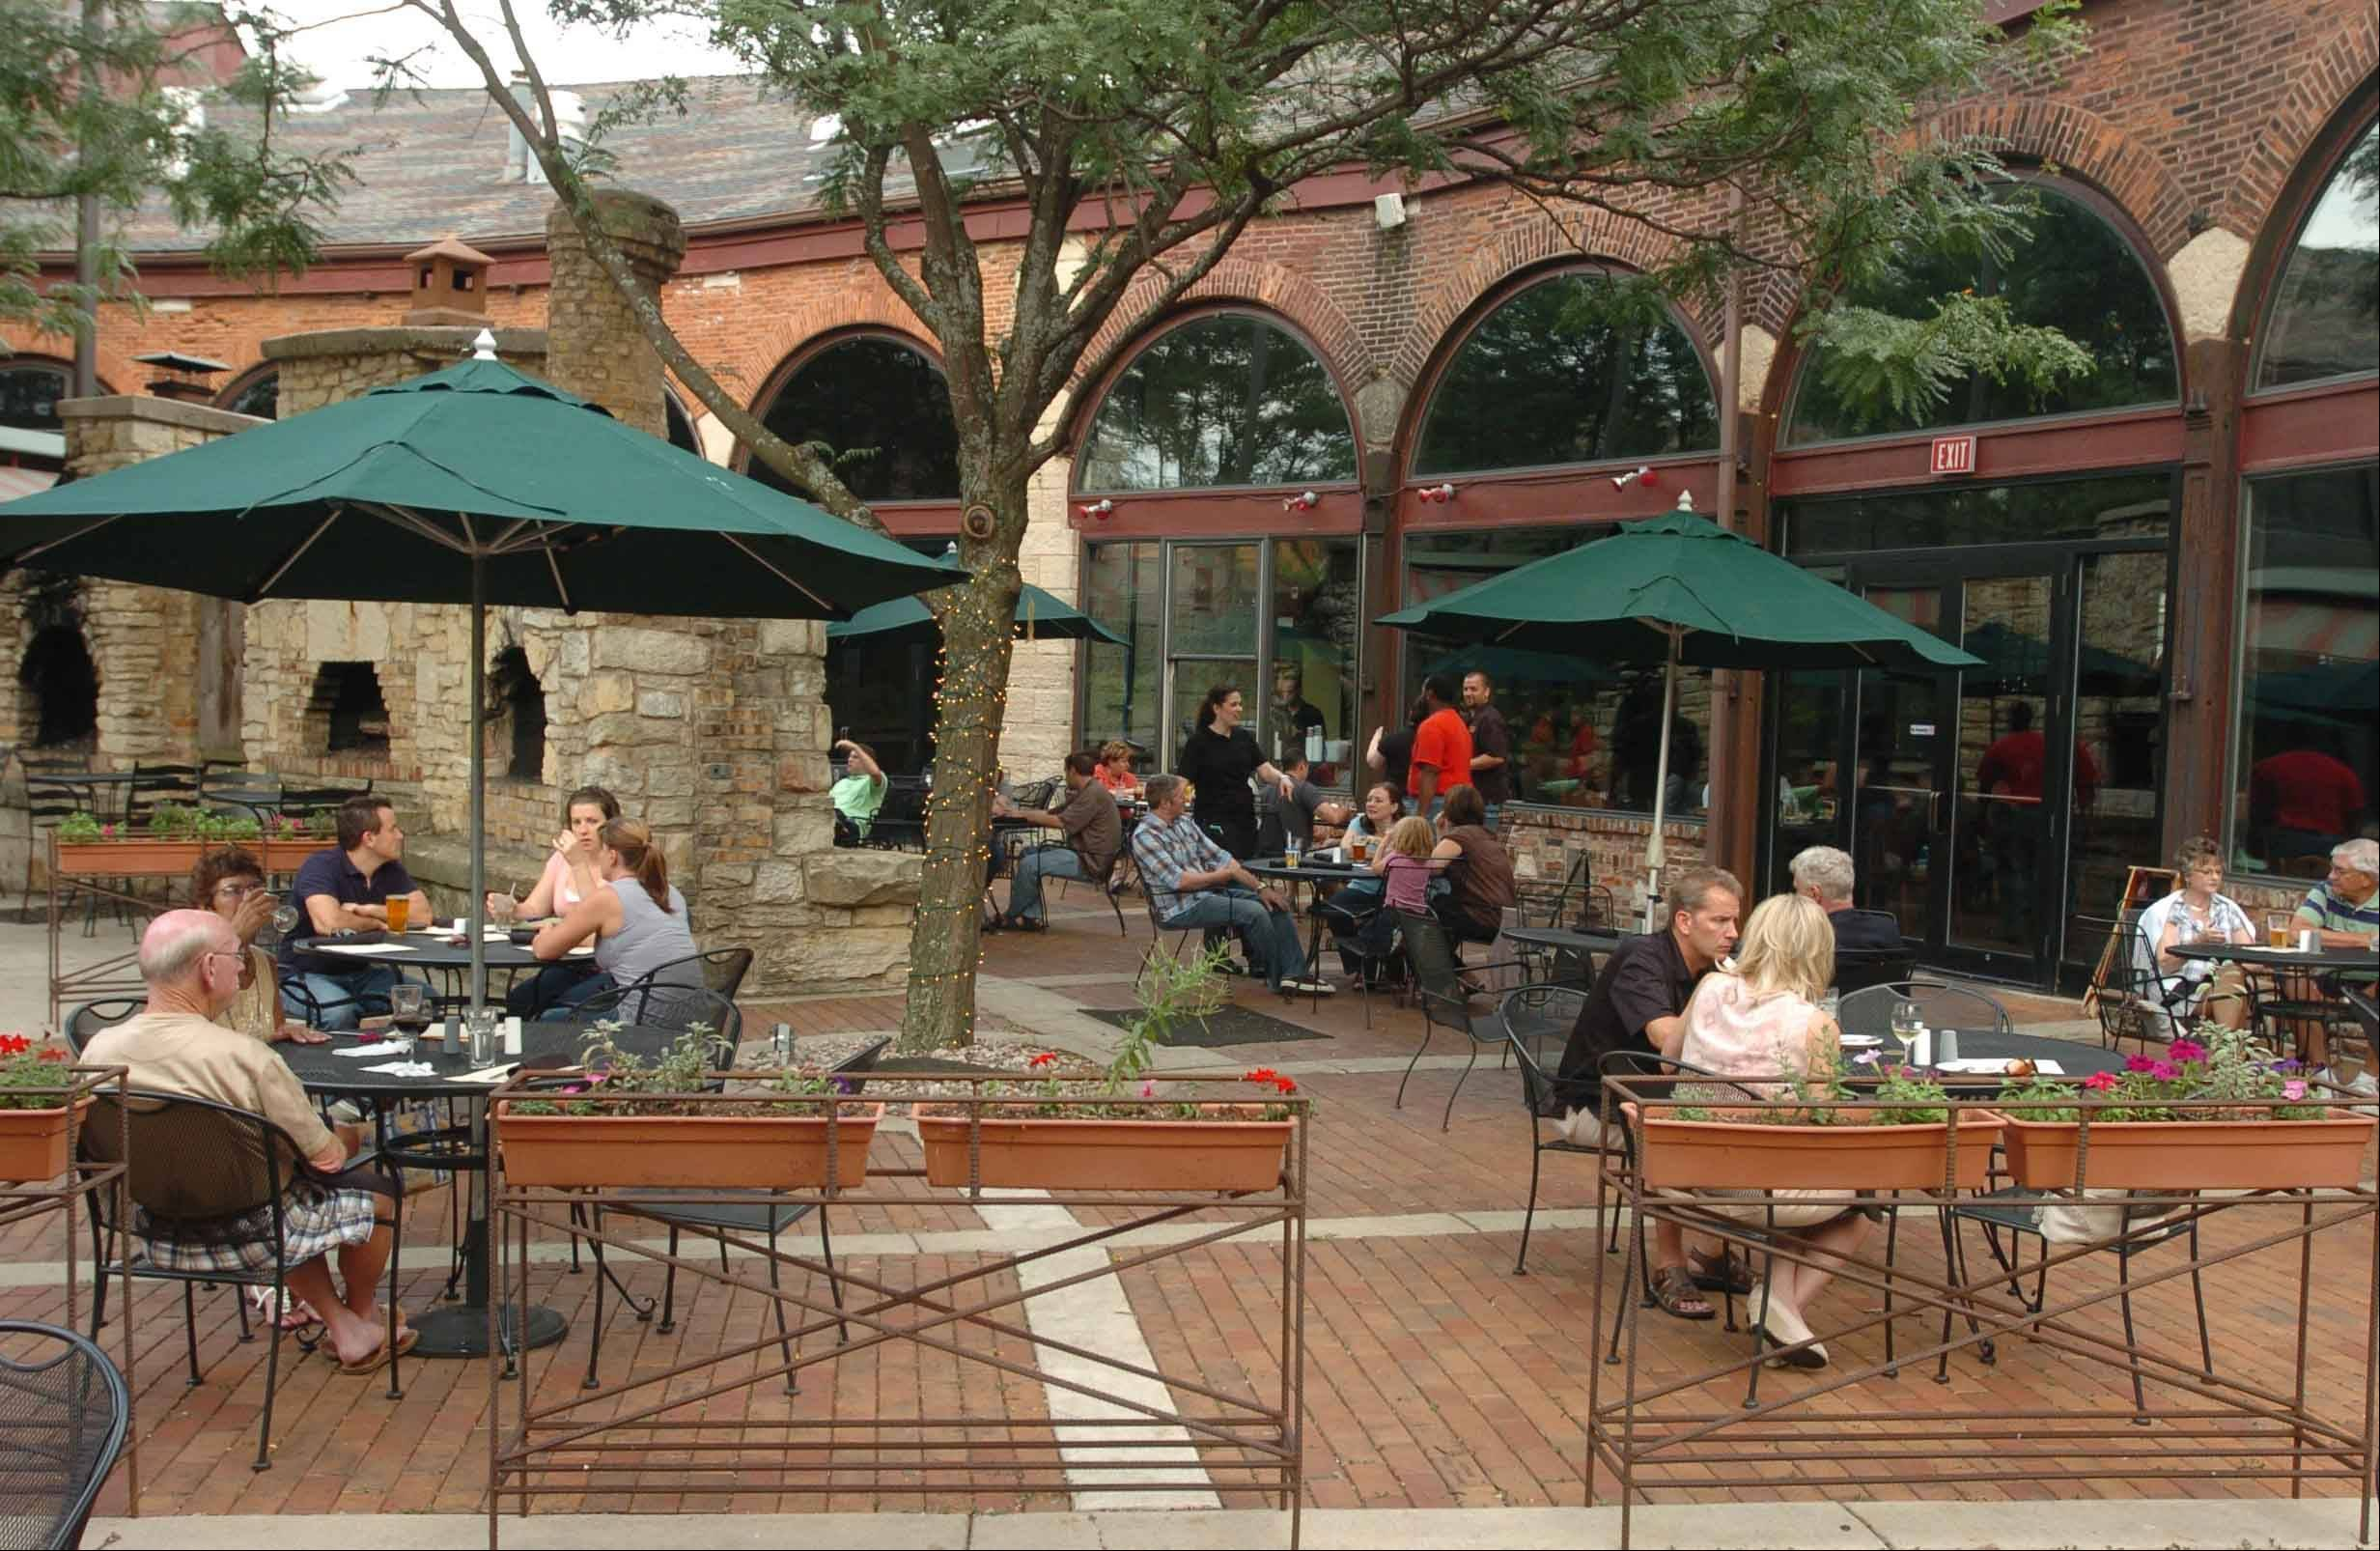 A patio provides outdoor seating in the summer months at Two Brothers Roundhouse in Aurora.